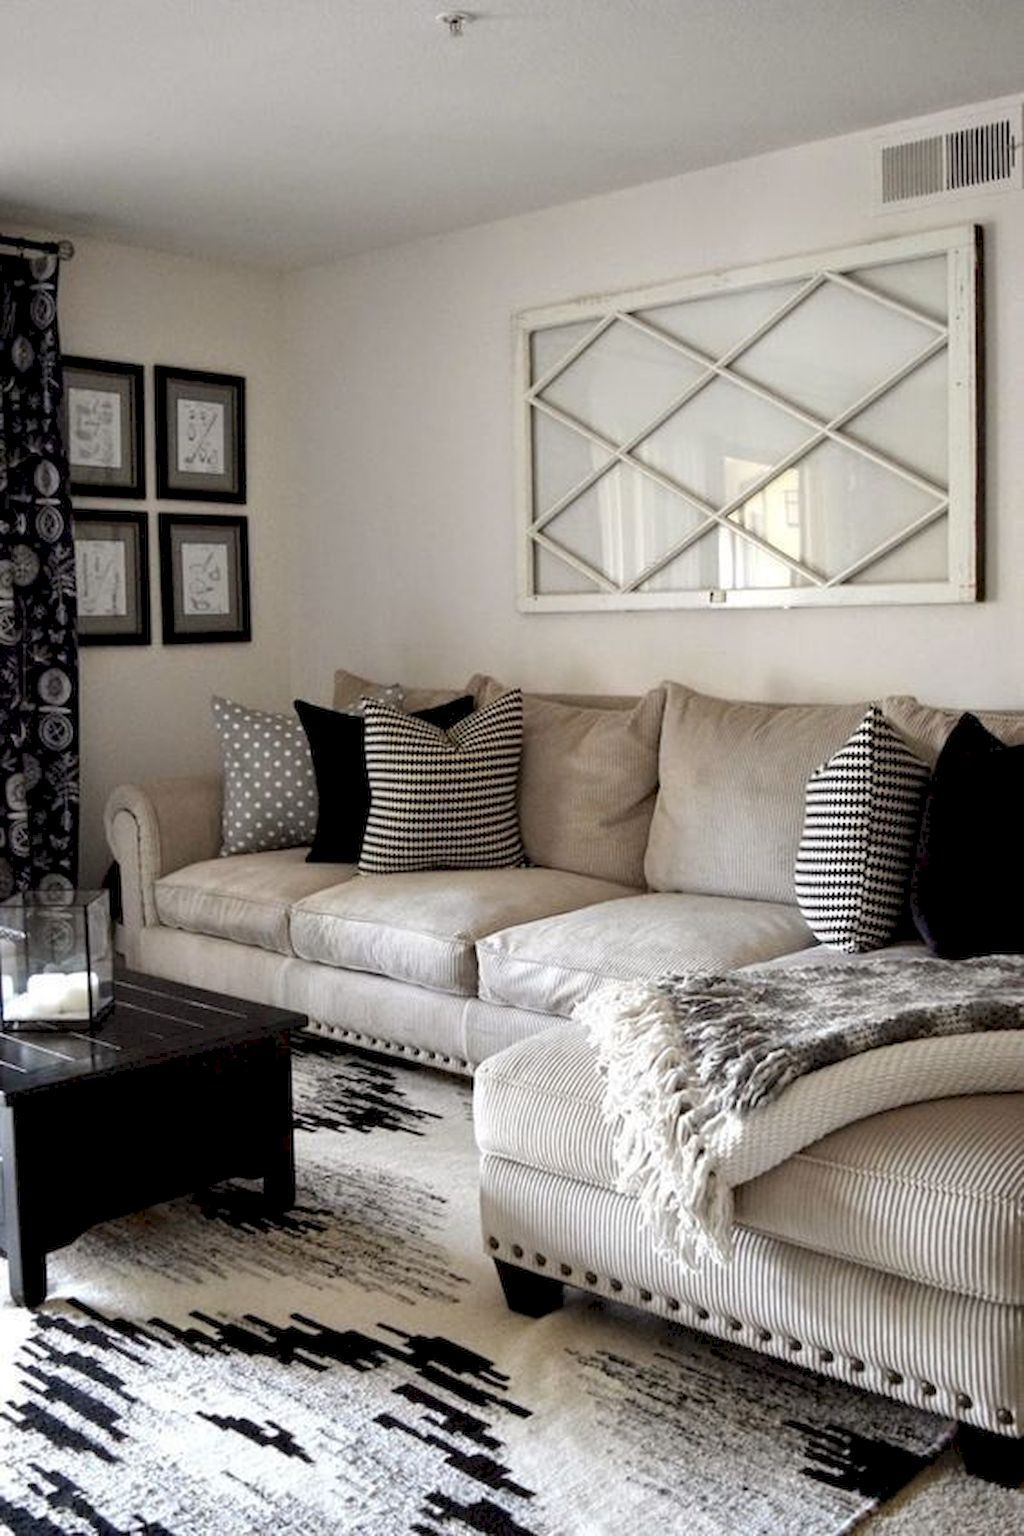 adorable 36 small living room ideas on a budget https://besideroom